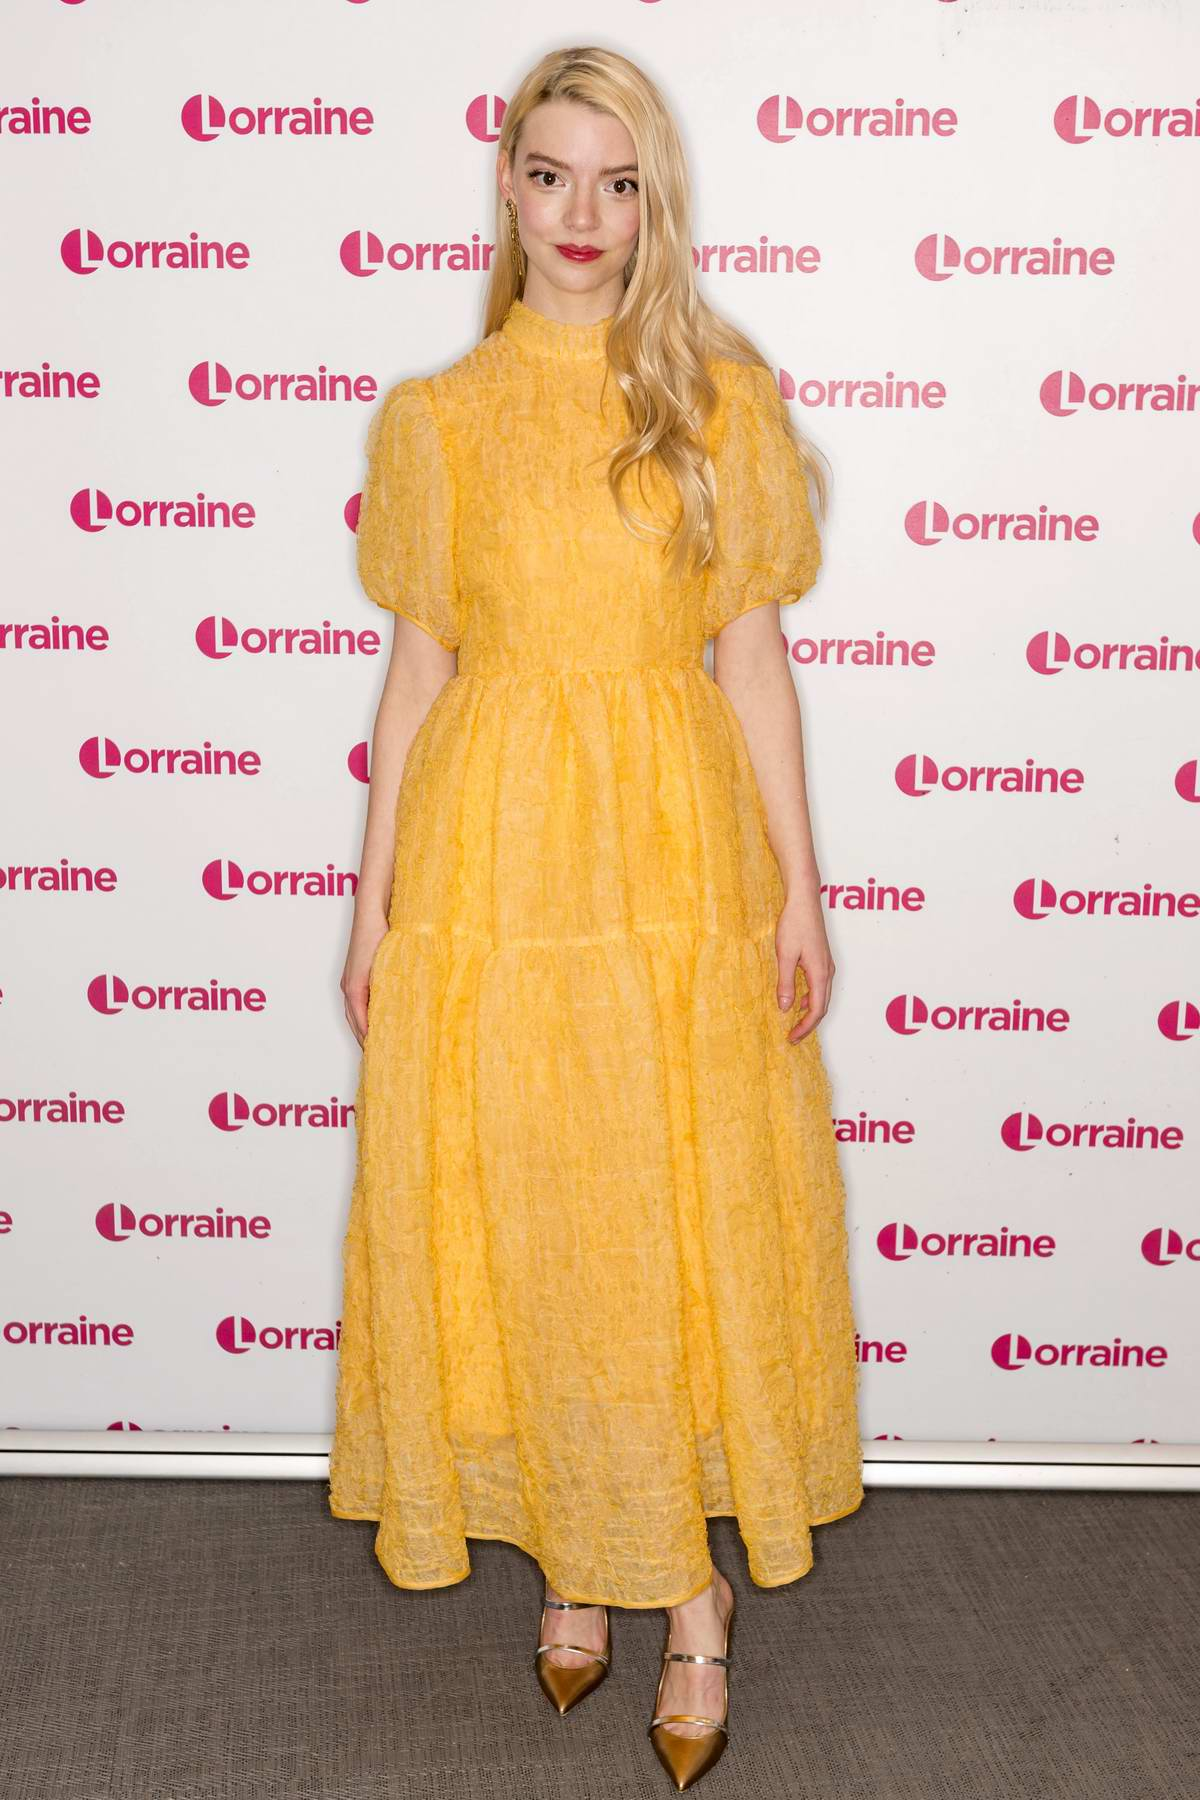 Anya Taylor-Joy promotes her new movie 'Emma' on 'Lorraine' TV show in London, UK